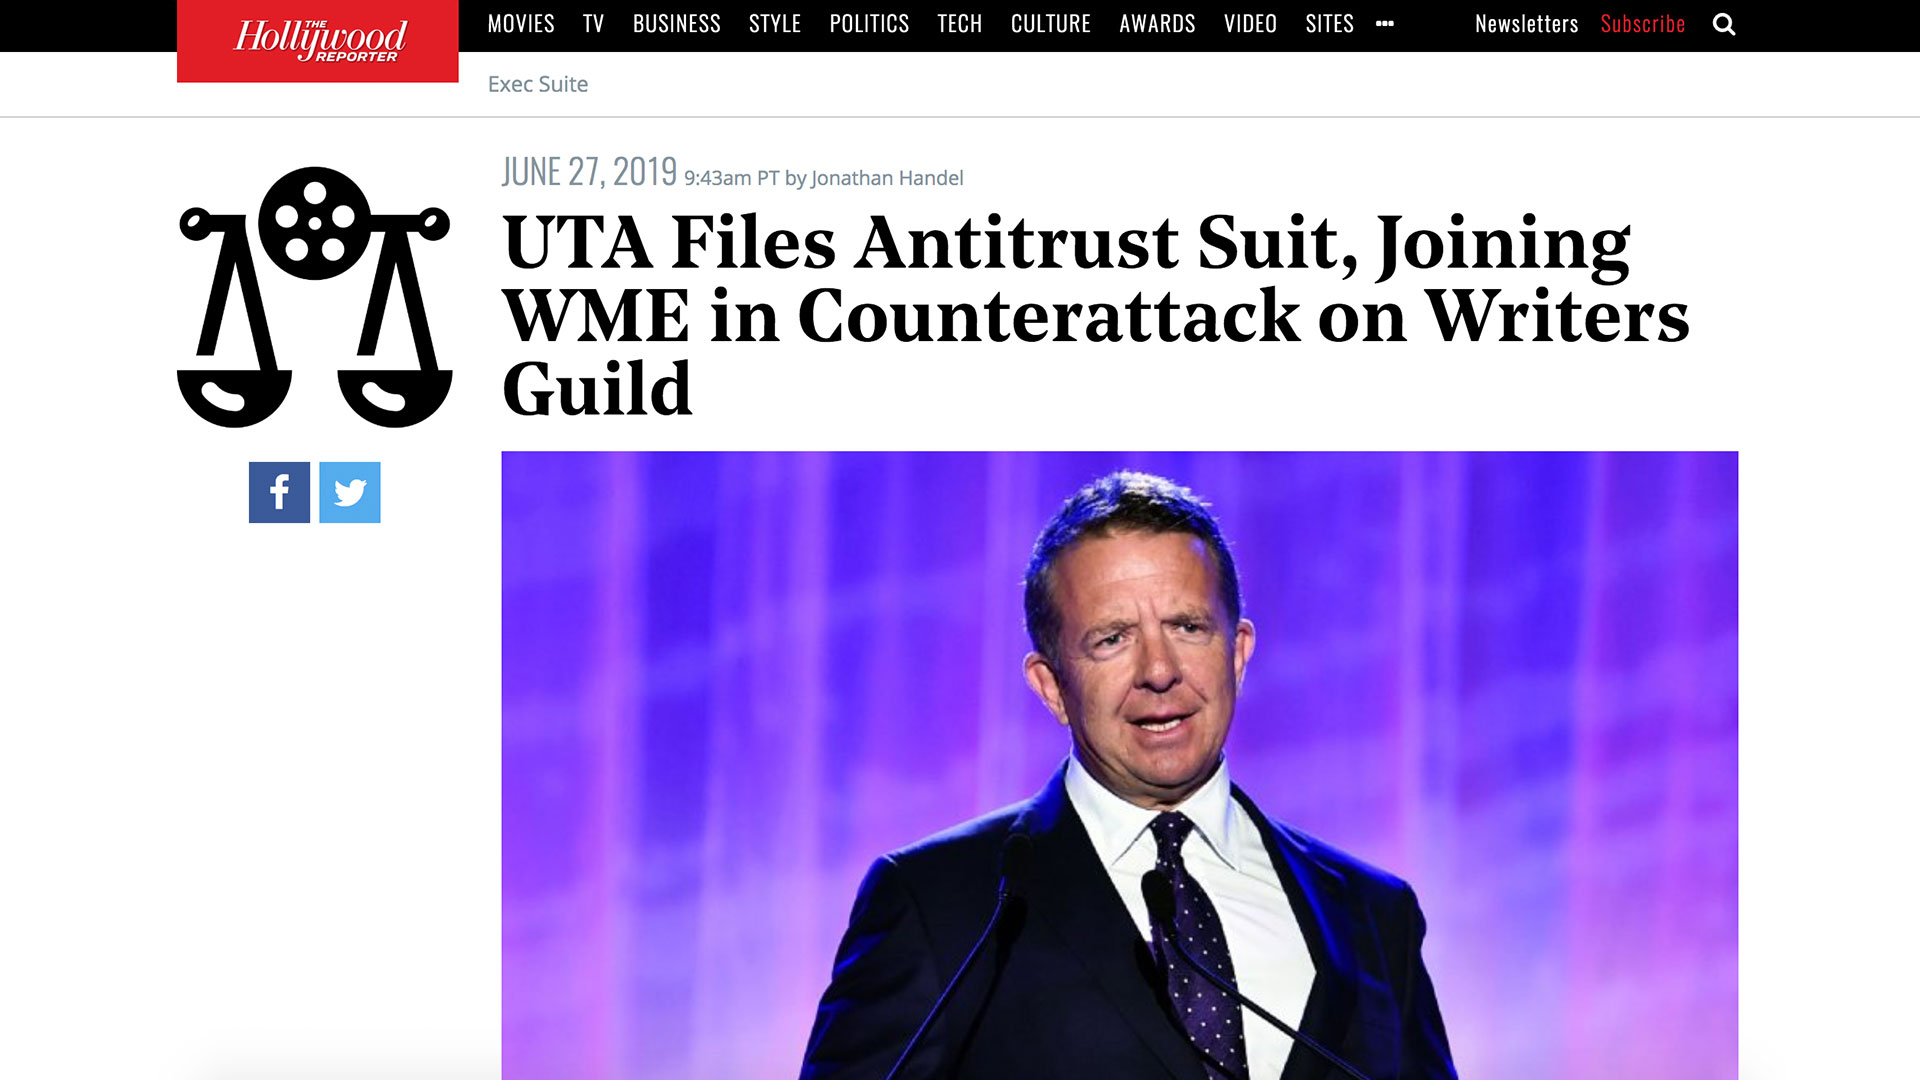 Fairness Rocks News UTA Files Antitrust Suit, Joining WME in Counterattack on Writers Guild